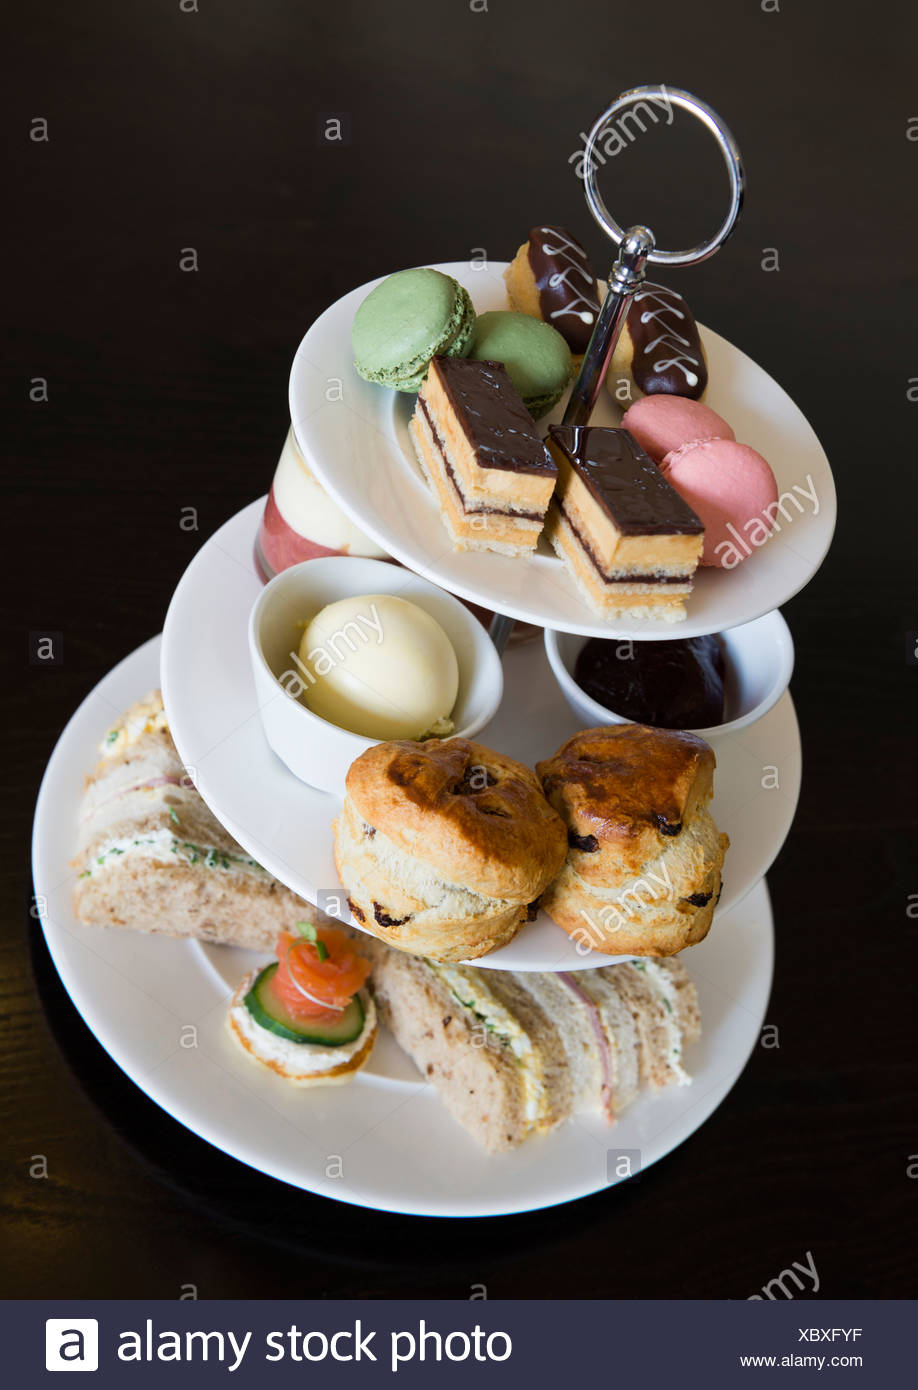 Afternoon tea with sandwiches and cakes - Stock Image